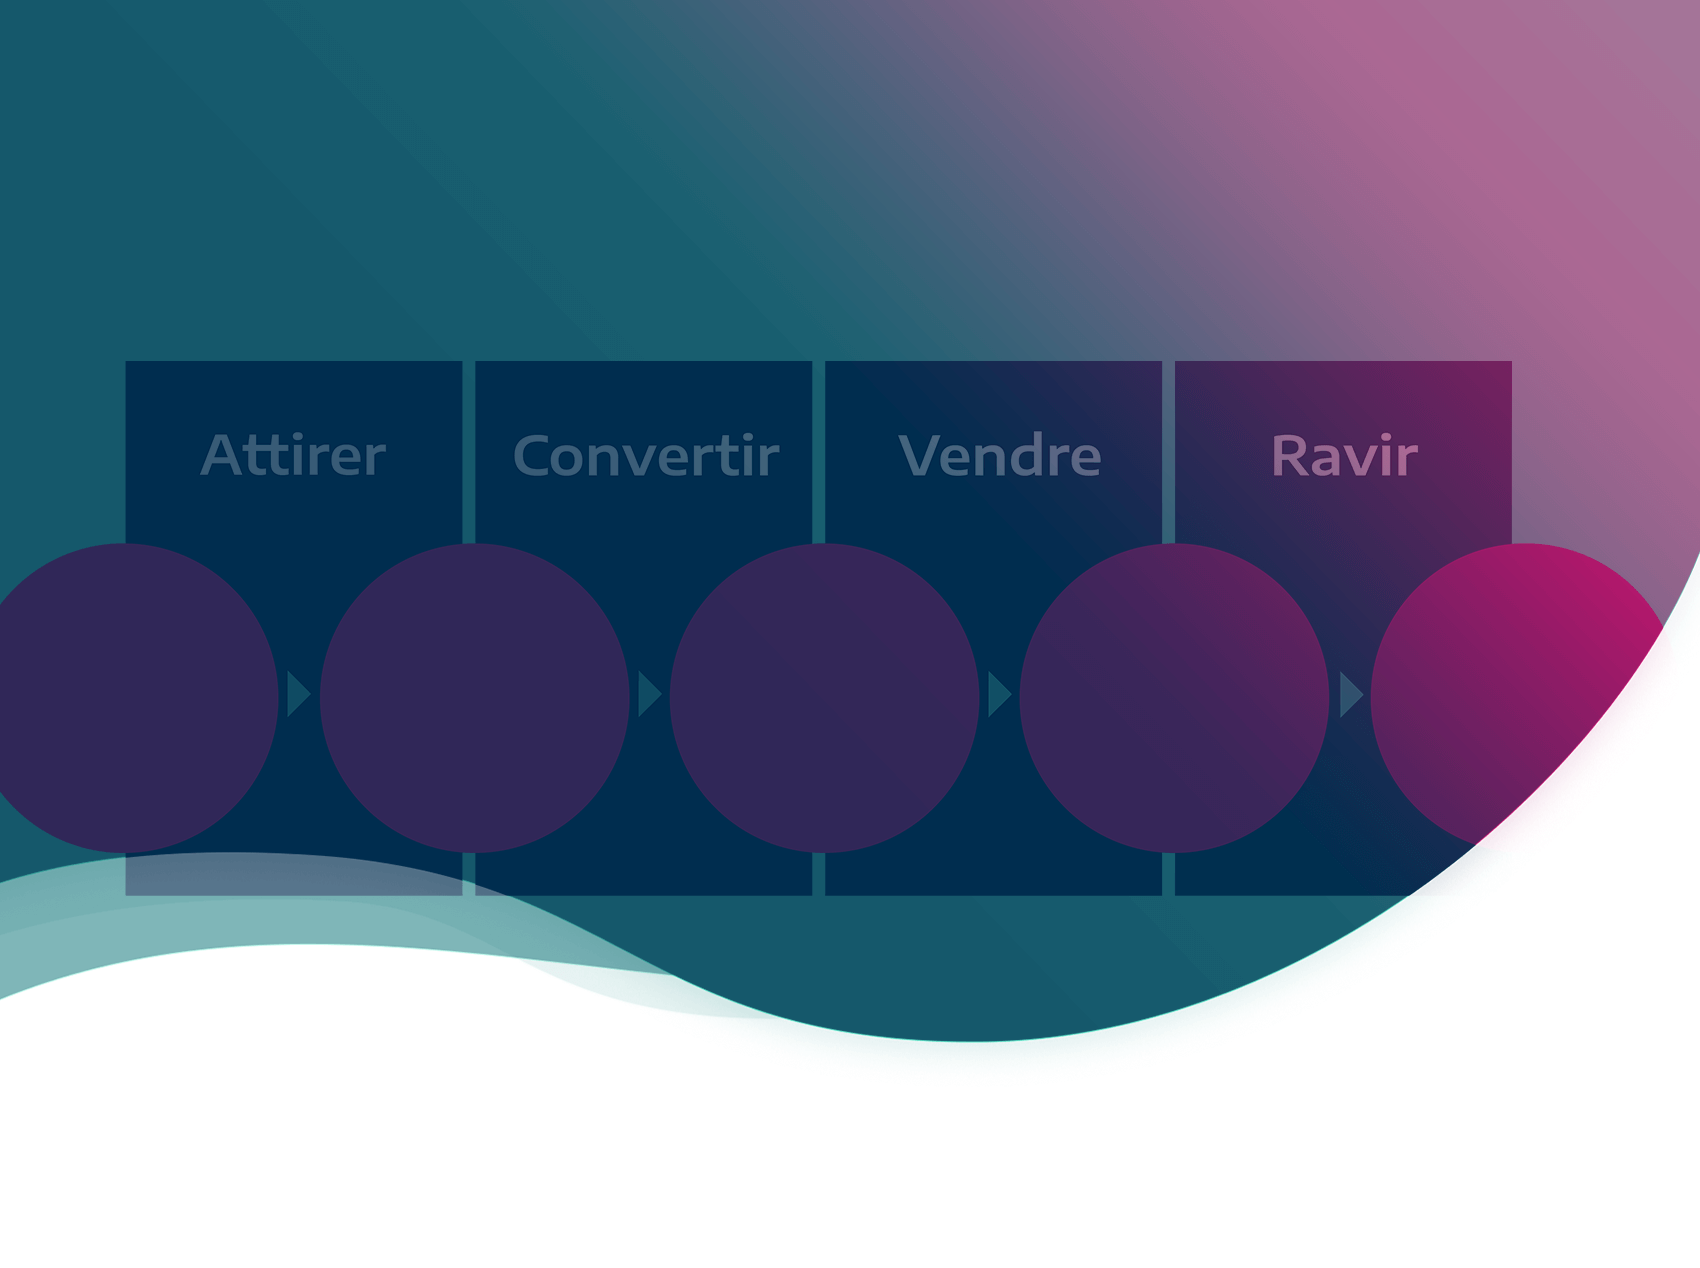 Les 4 étapes de l'inbound marketing : comment transformer vos visiteurs web en clients